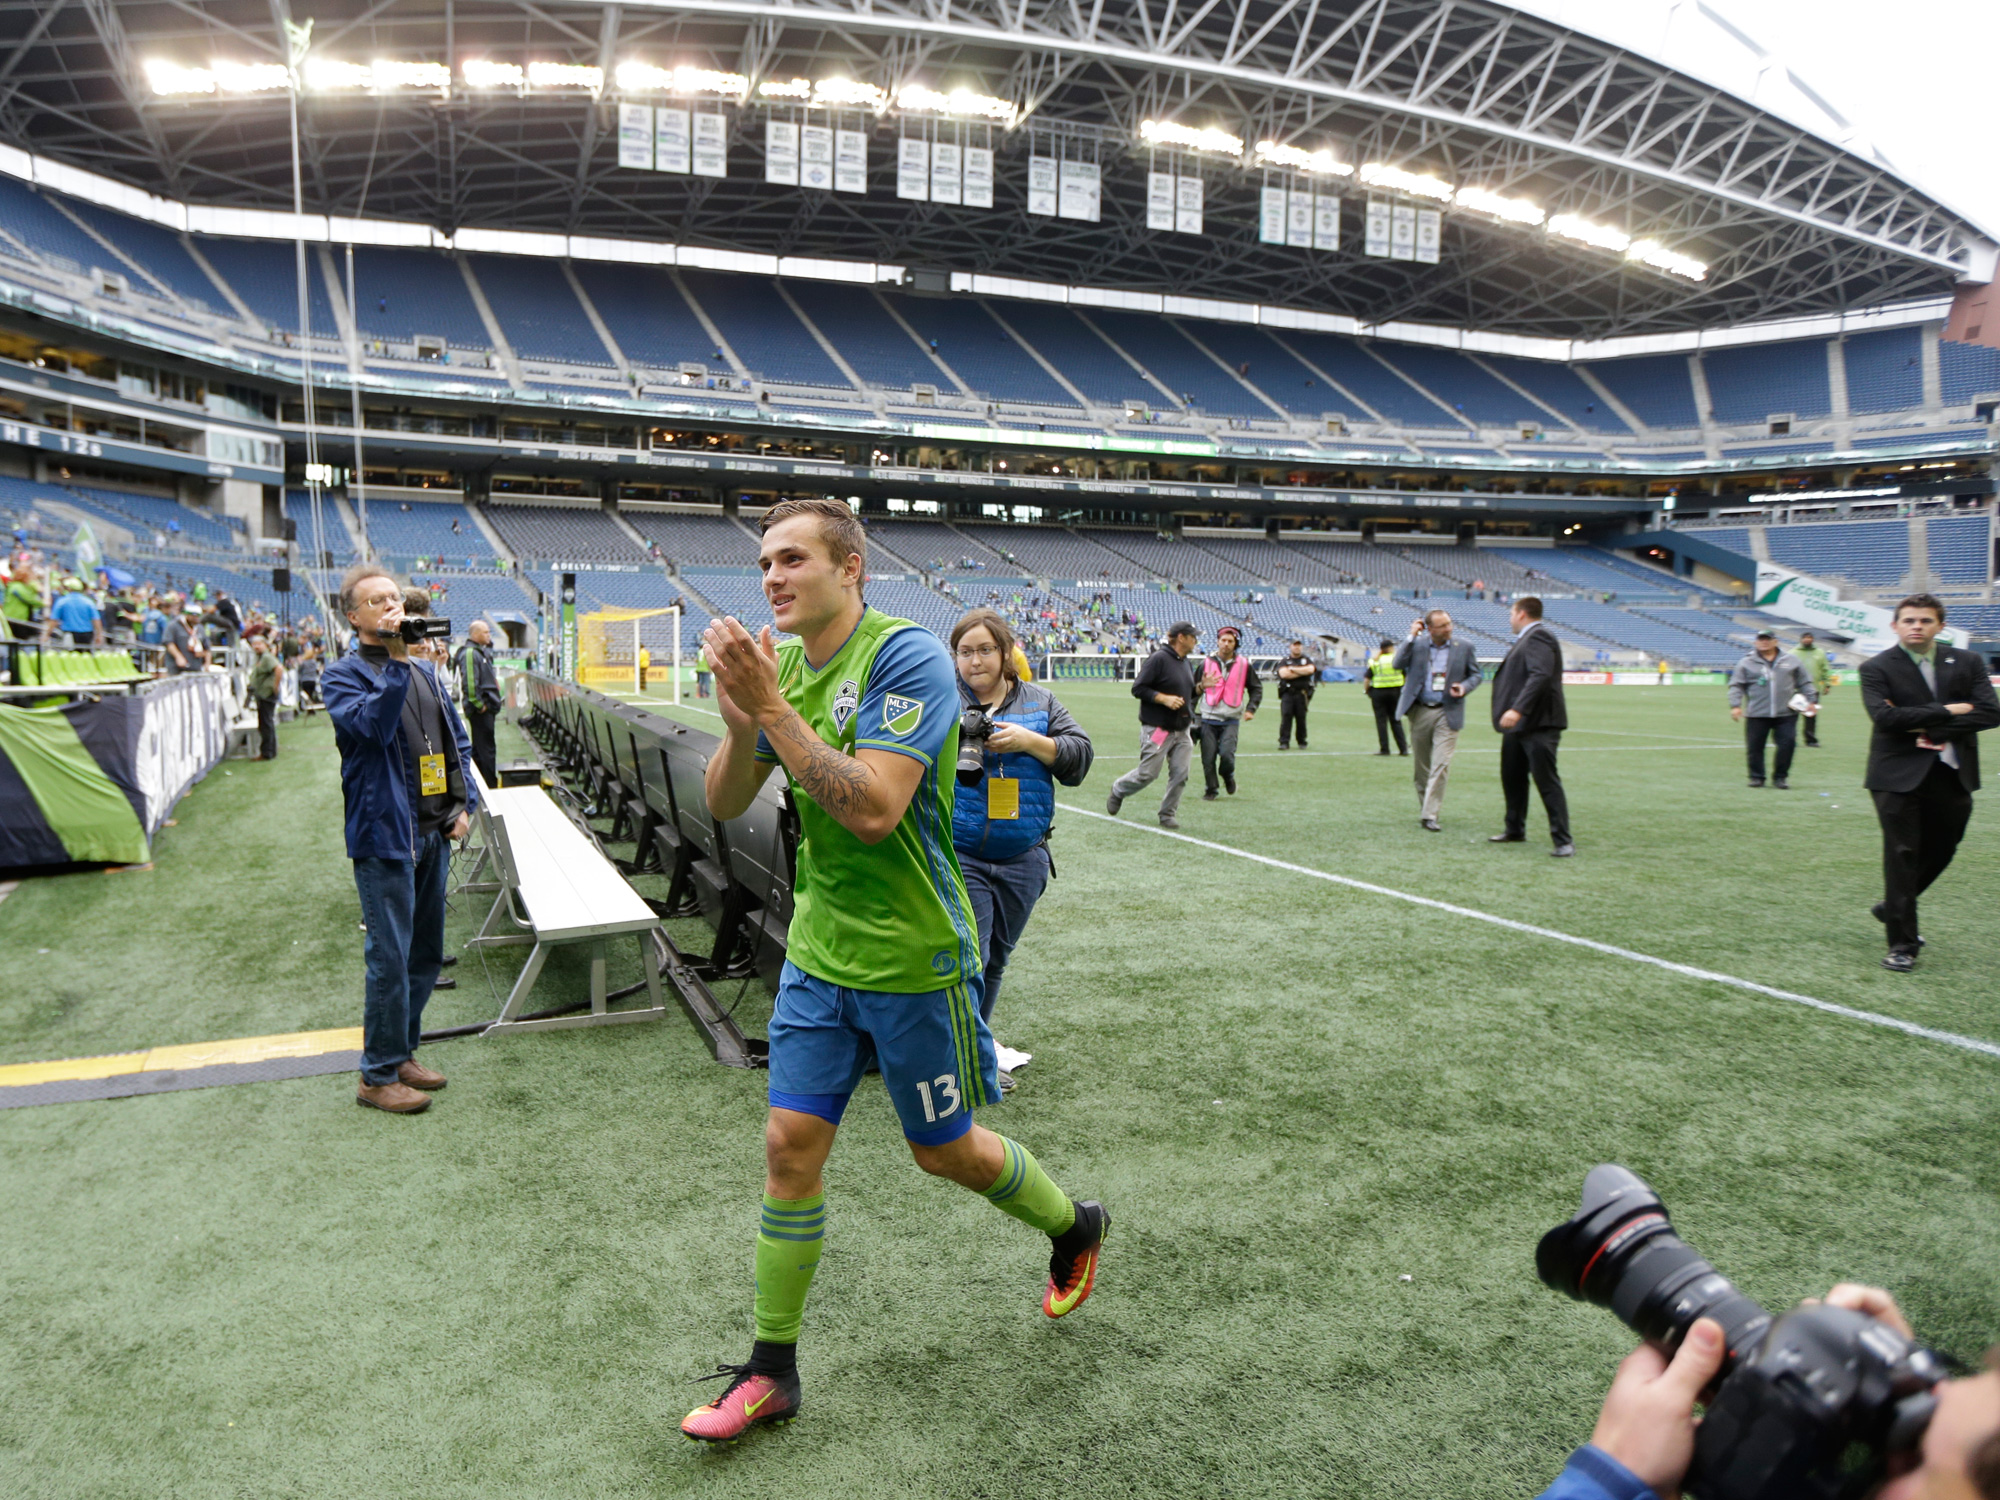 Jordan Morris runs off the field at CenturyLink Field